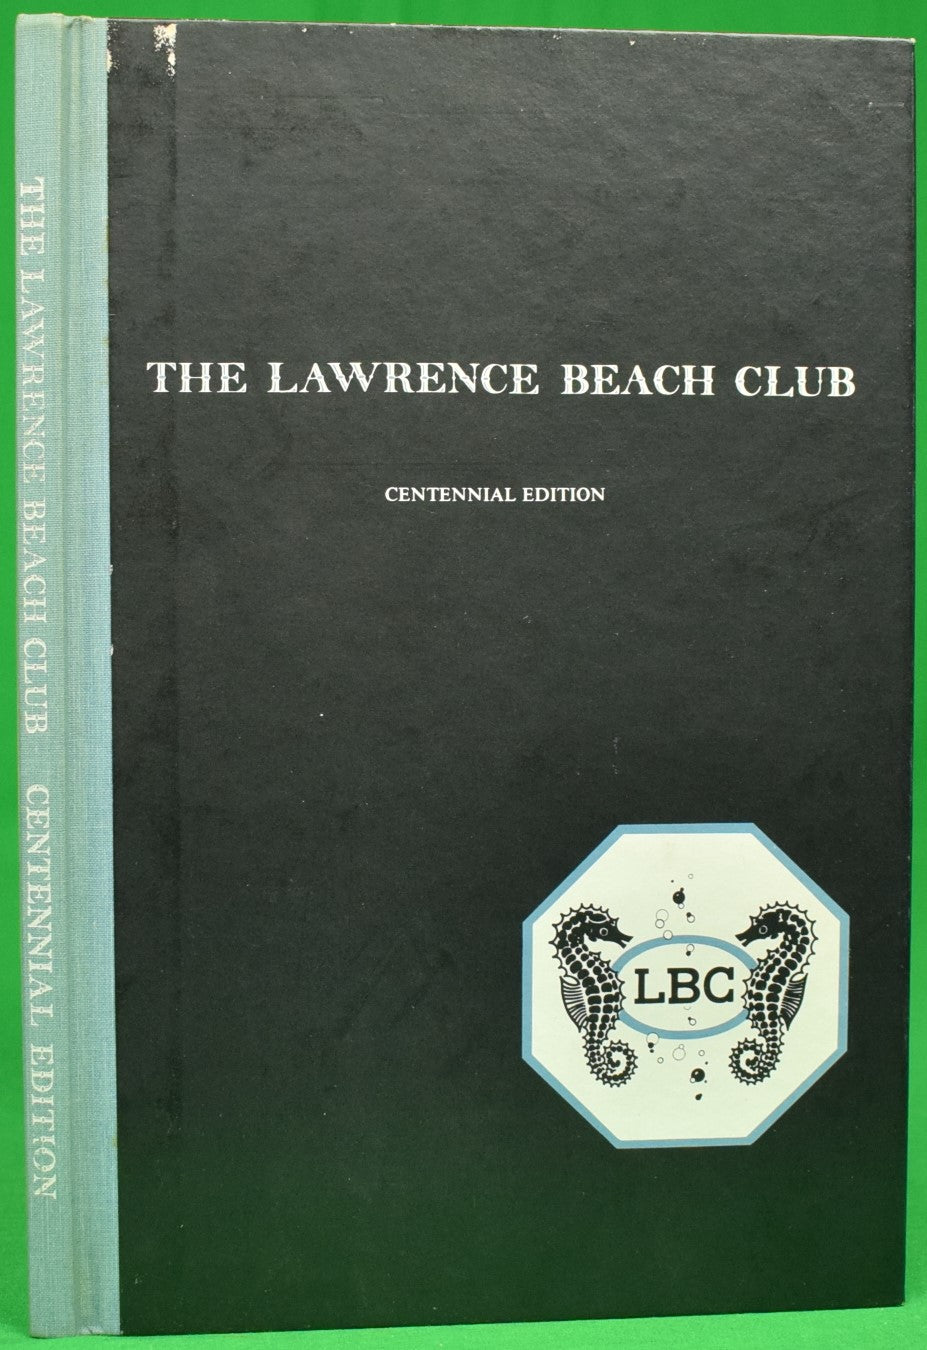 """The Lawrence Beach Club Centennial Edition"" 1986 ALLISON, Benjamin R., M.D."